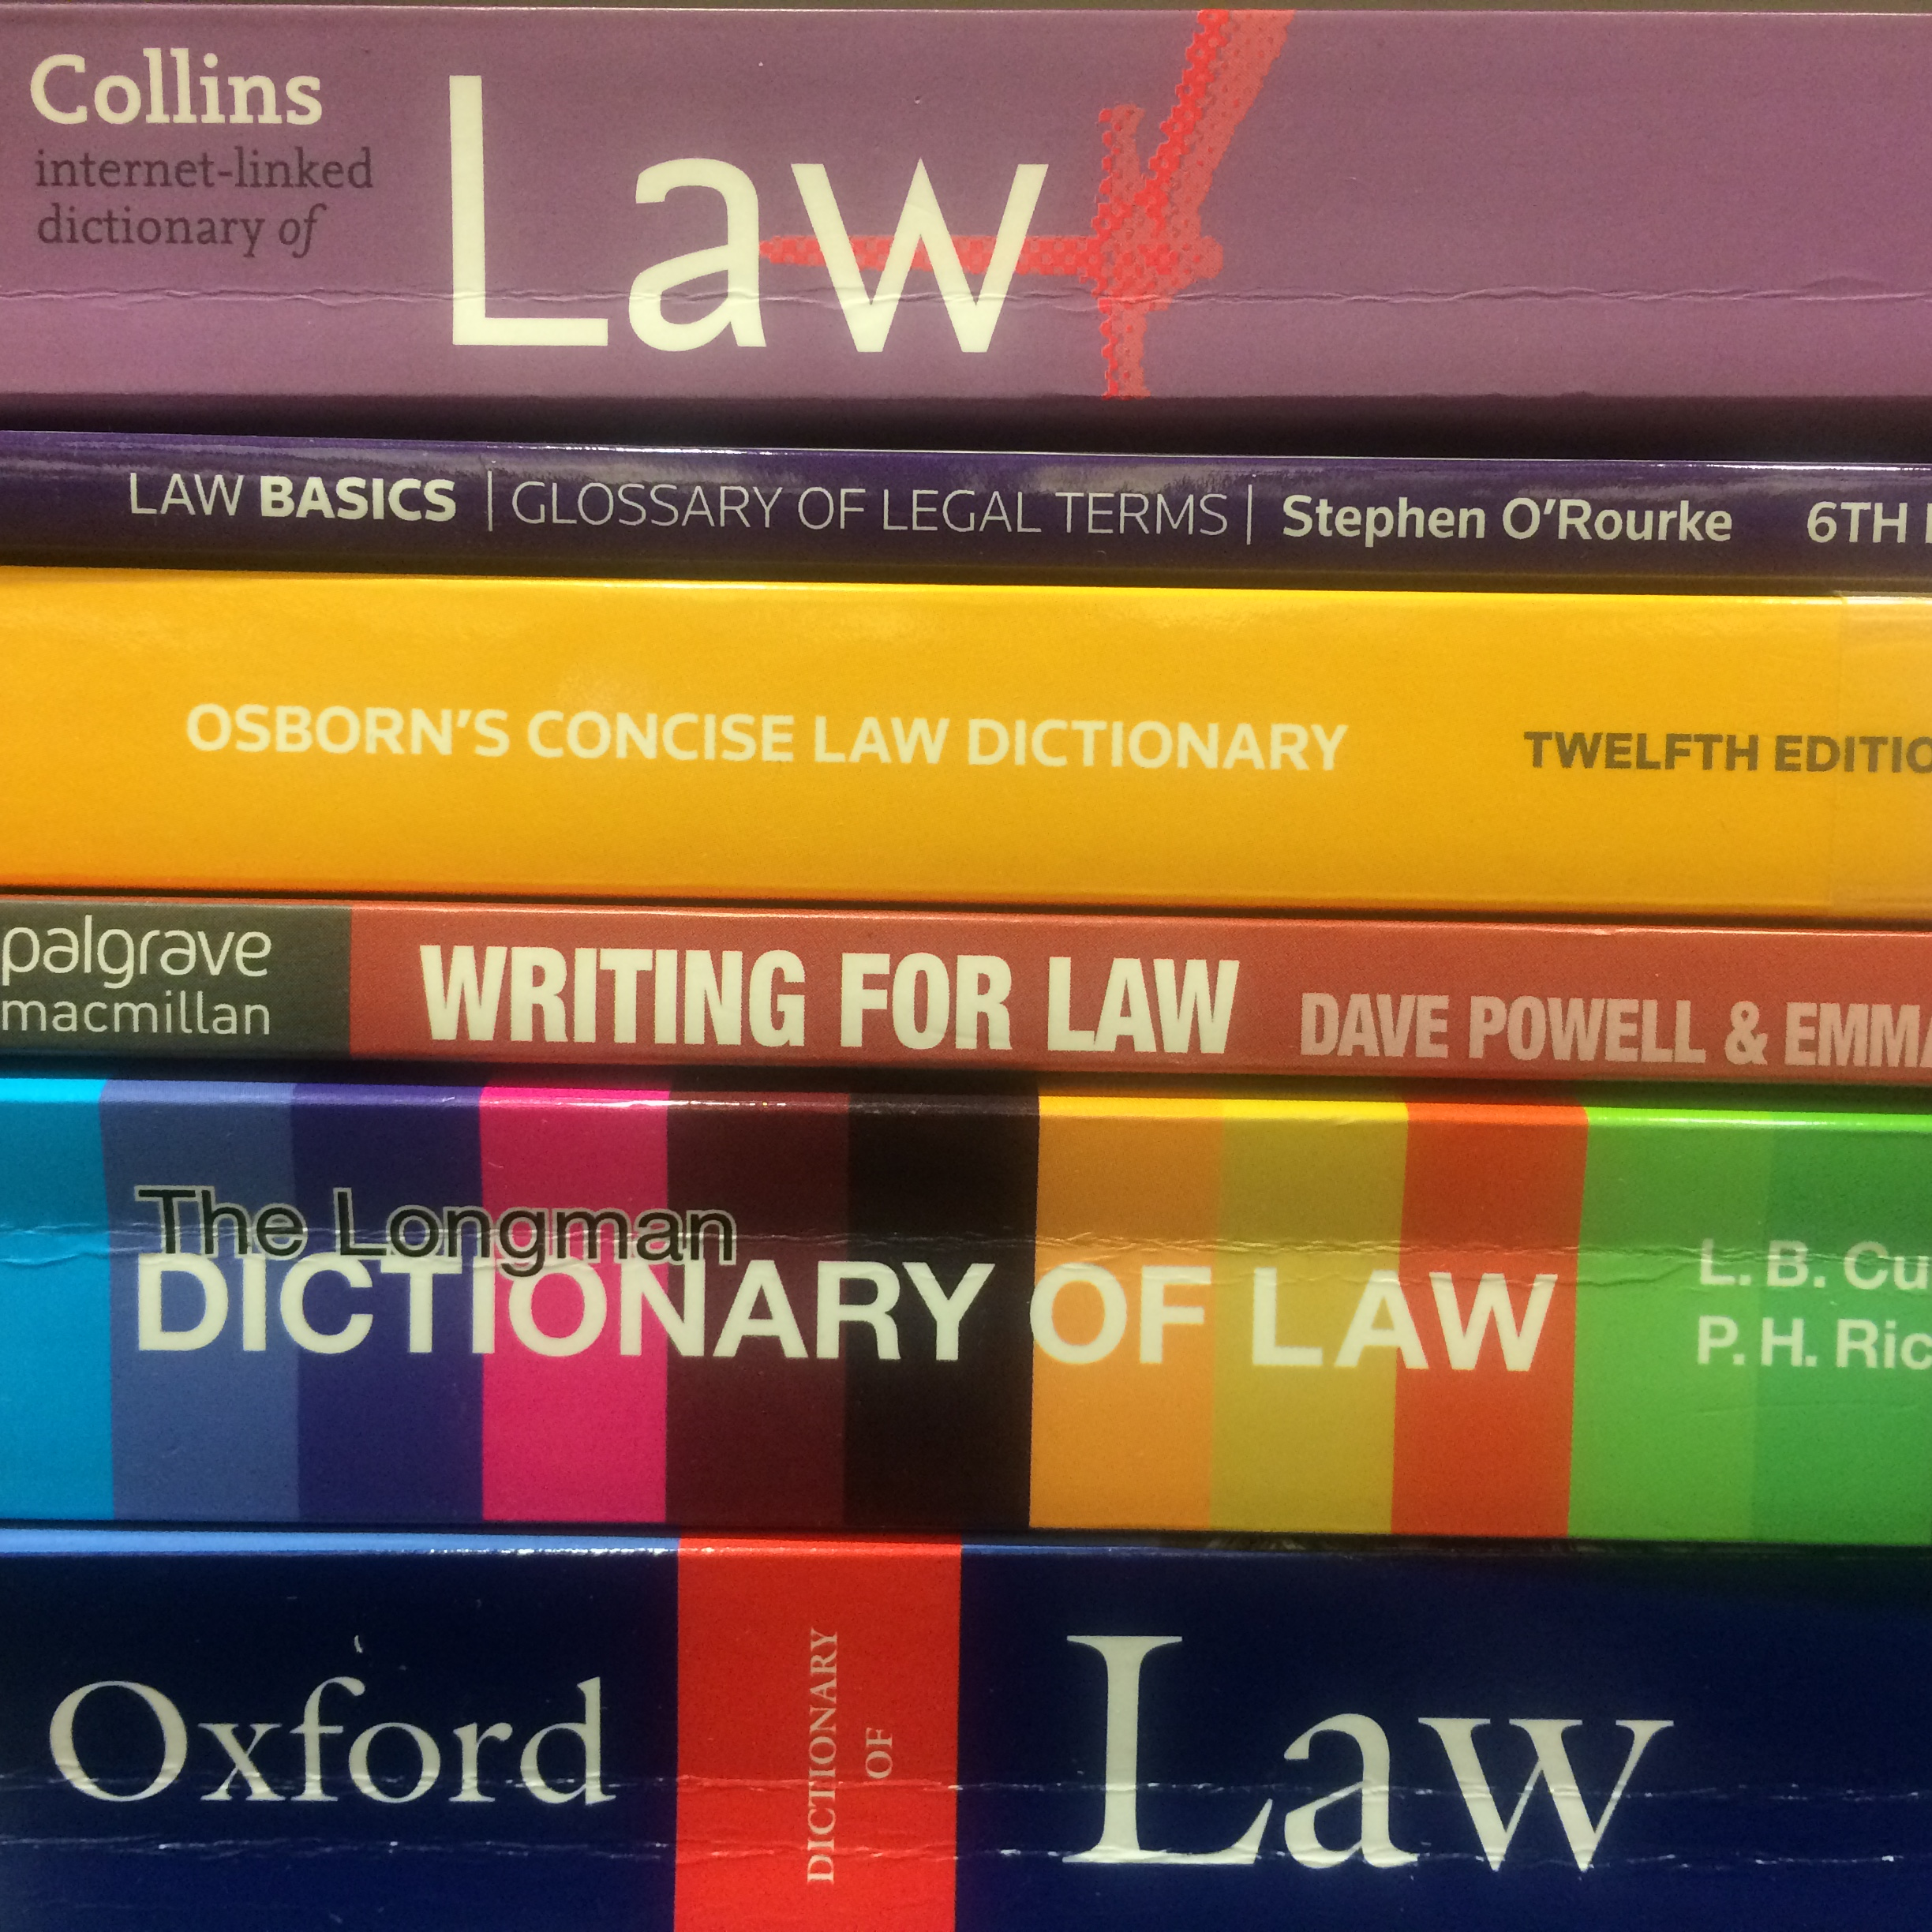 A pile of colouful spines of legal dictionaries and law books